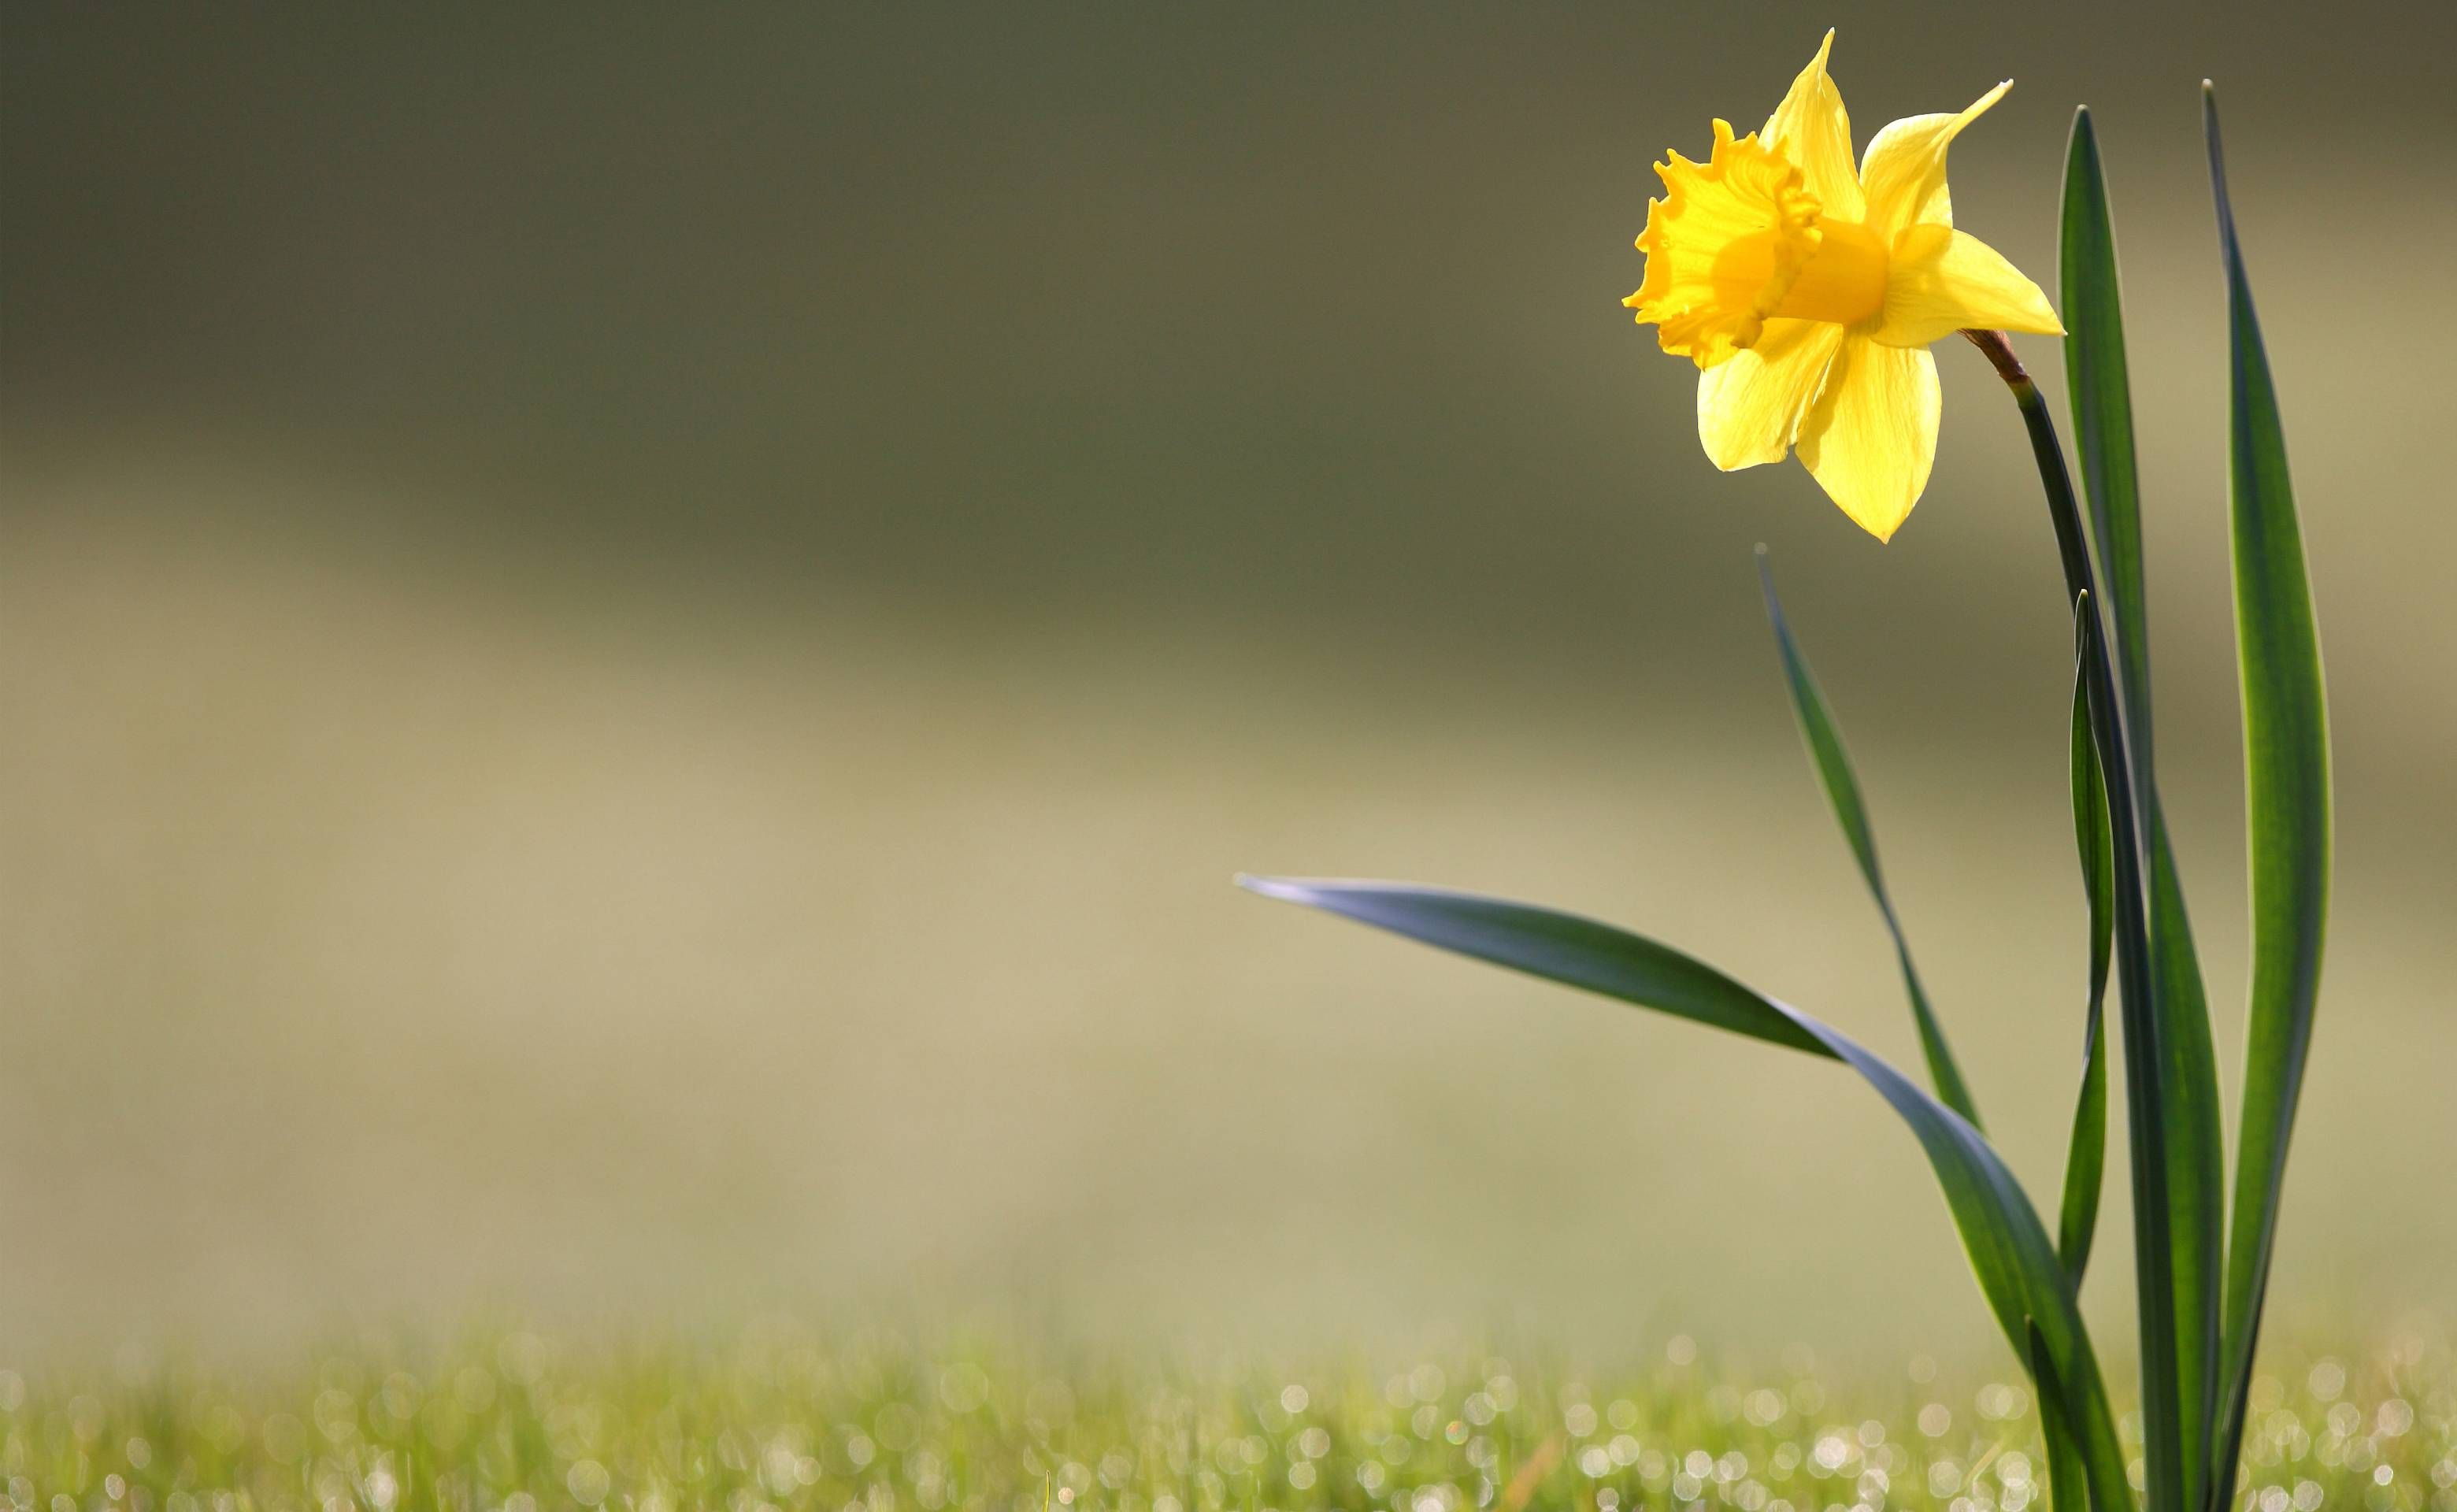 Daffodil Wallpapers Wallpaper Cave (With images